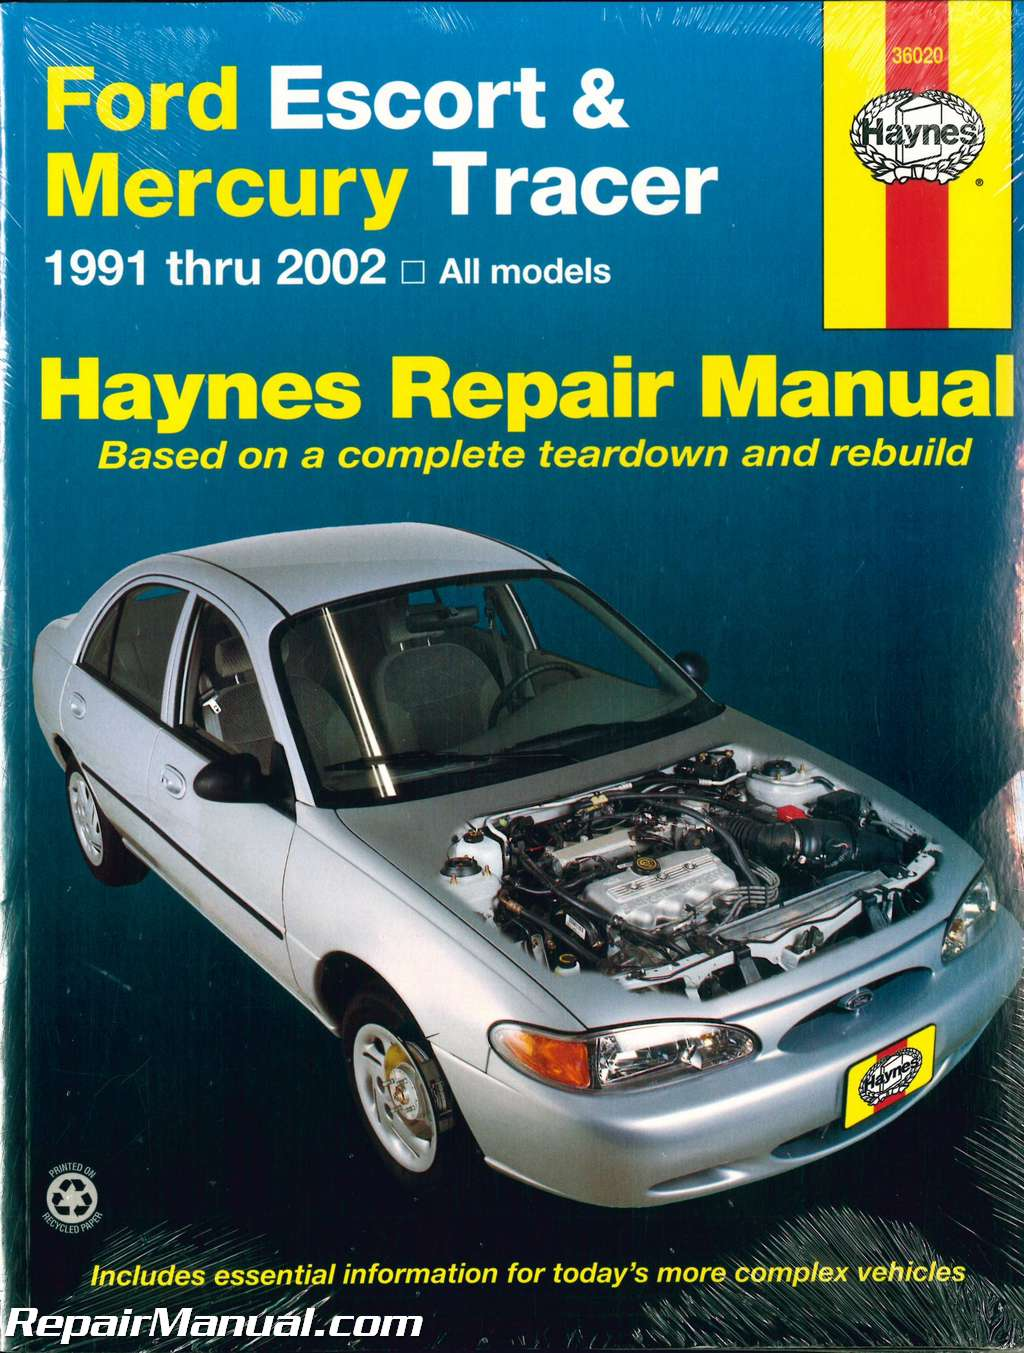 ford escort repair manual 1995 open source user manual u2022 rh dramatic varieties com 1999 Ford Ranger 1999 ford escort repair manual pdf